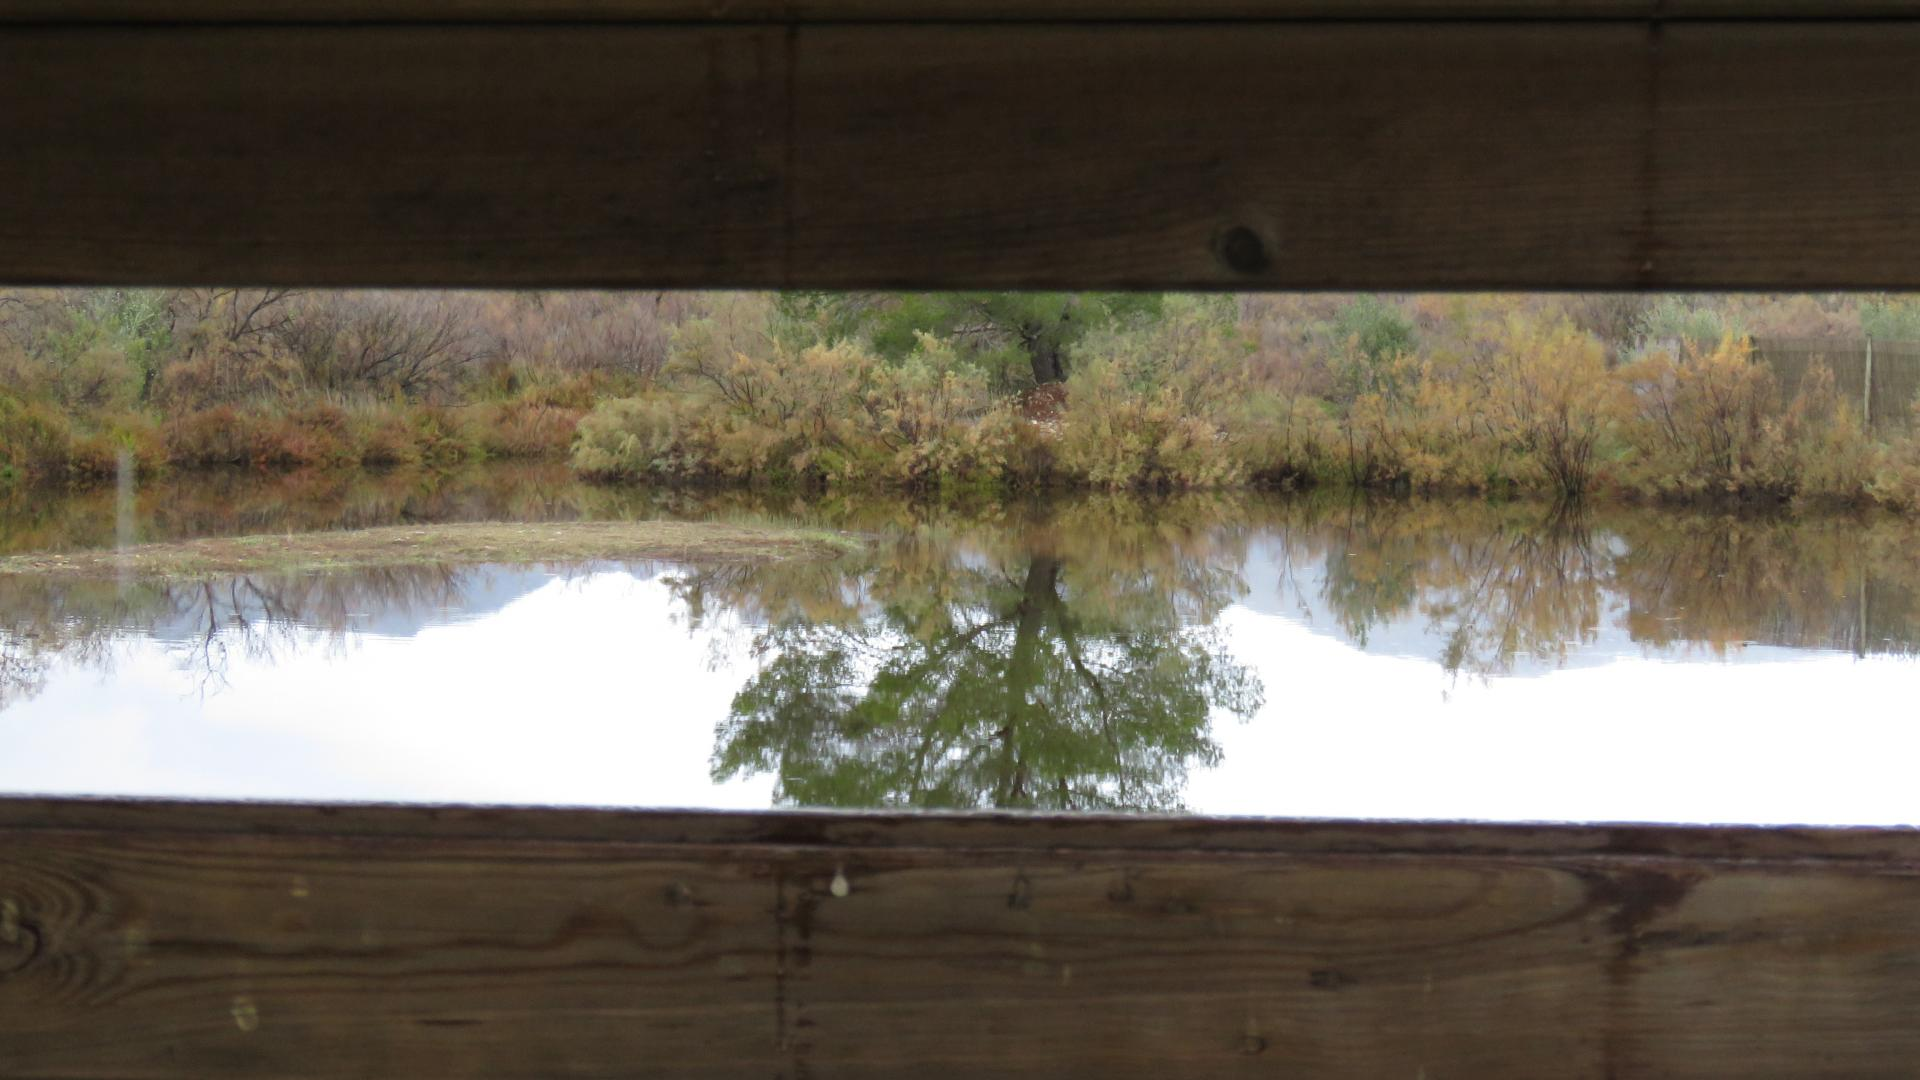 The view from the Can Curassa hide.